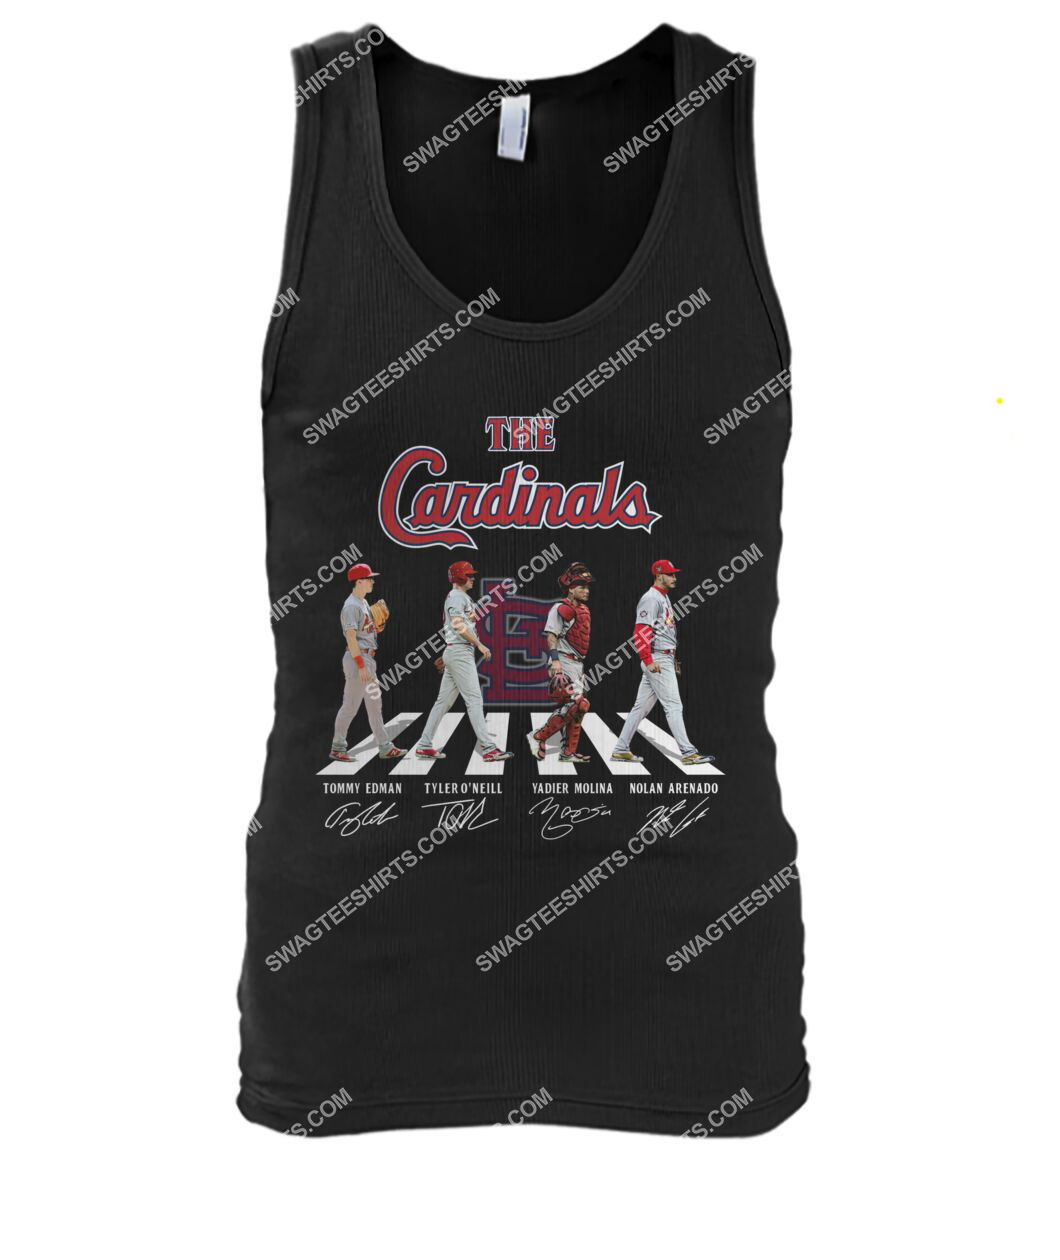 the st louis cardinals walking abbey road tank top 1